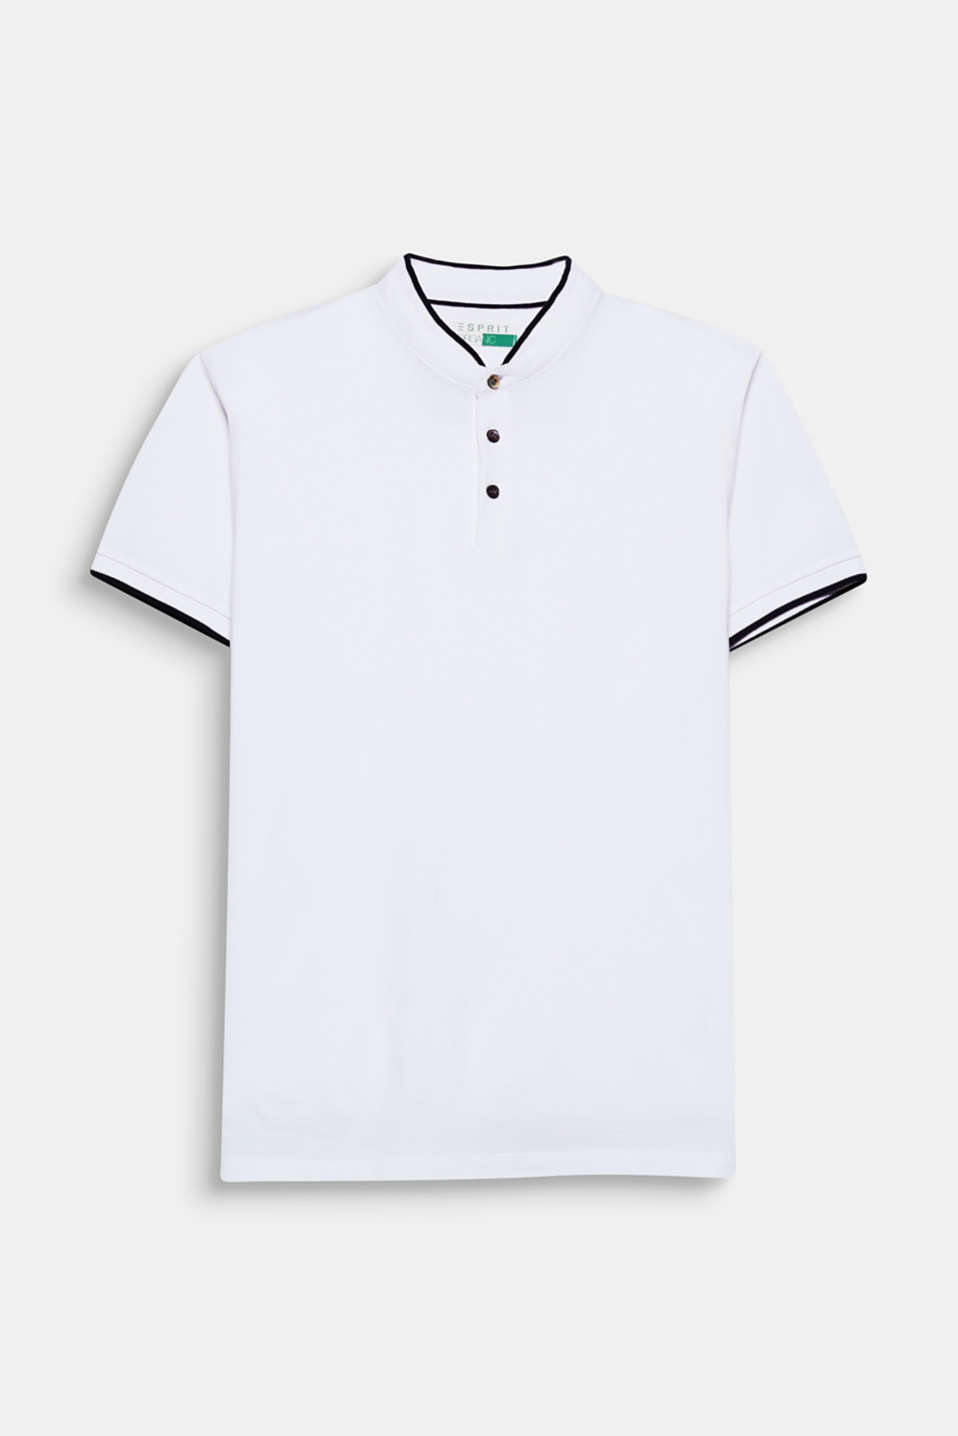 The ribbed, stand-up collar is a modern upgrade for your polo shirt.